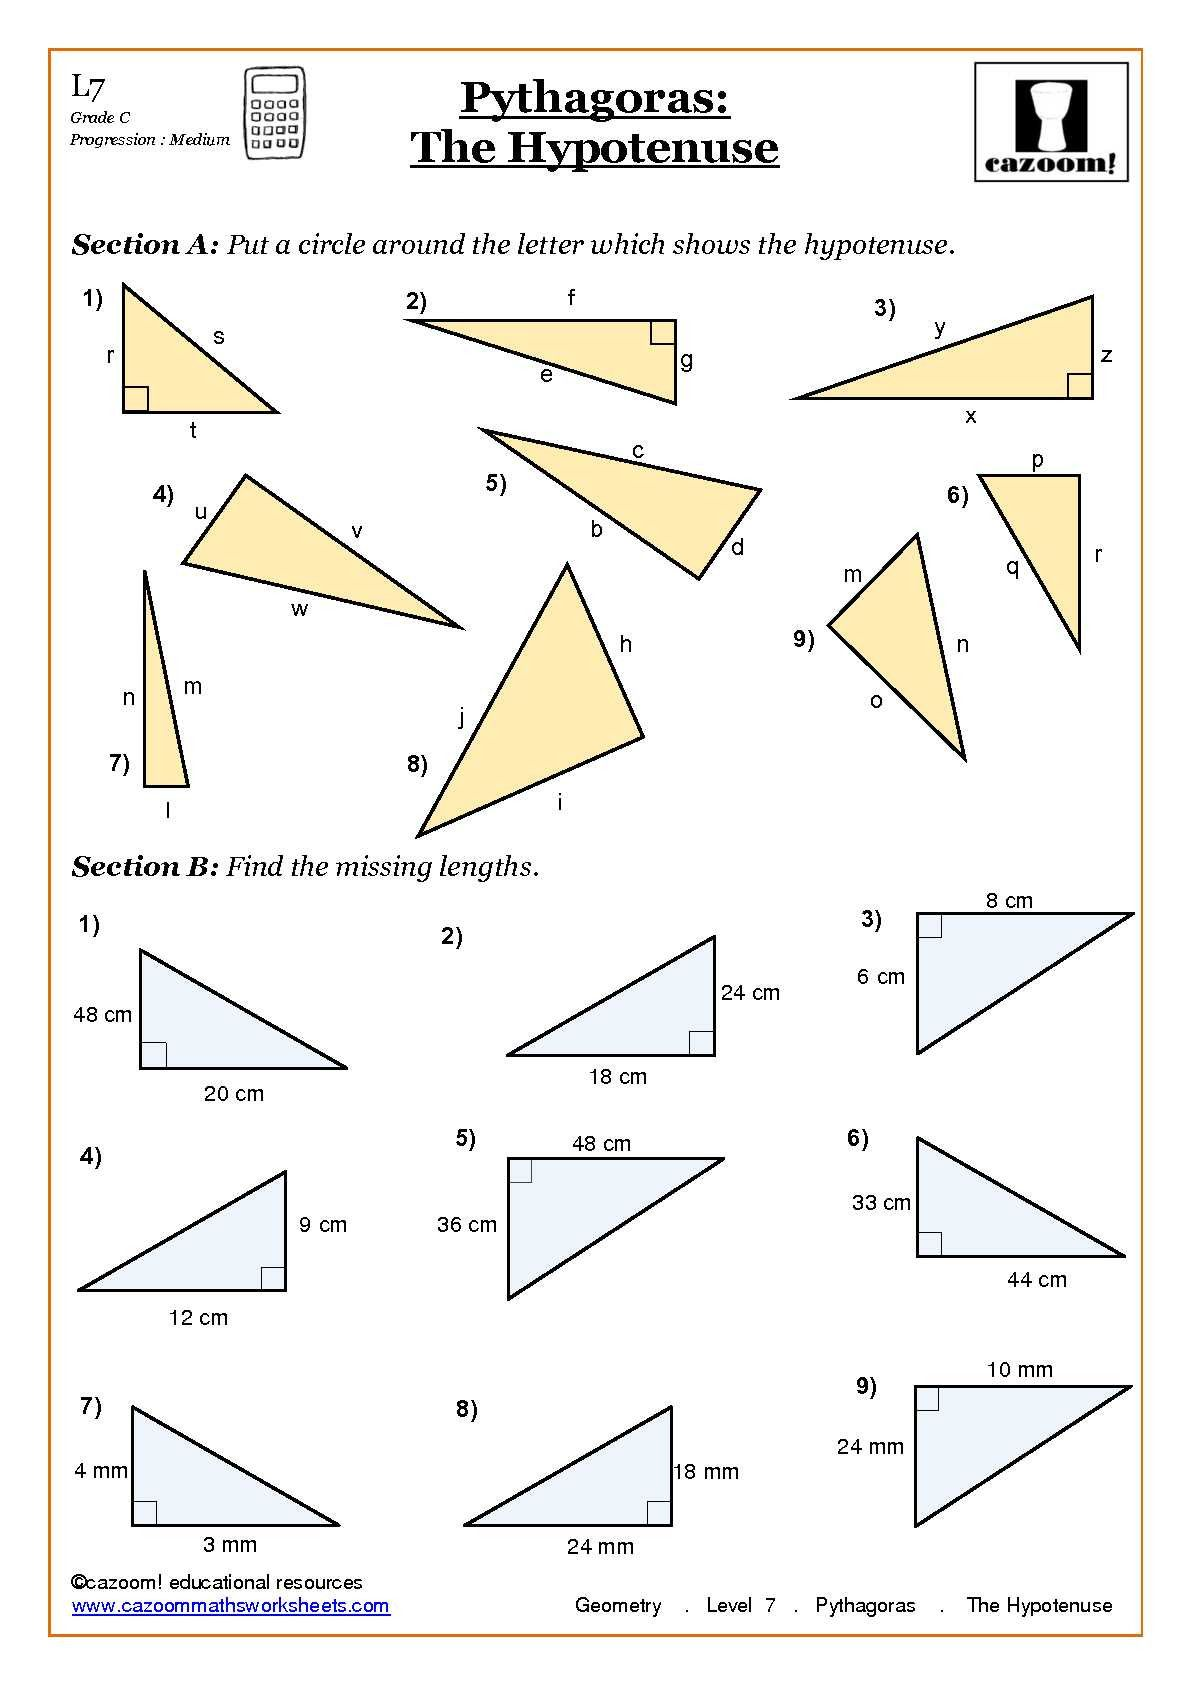 where to find trigonometry symbols in a word document